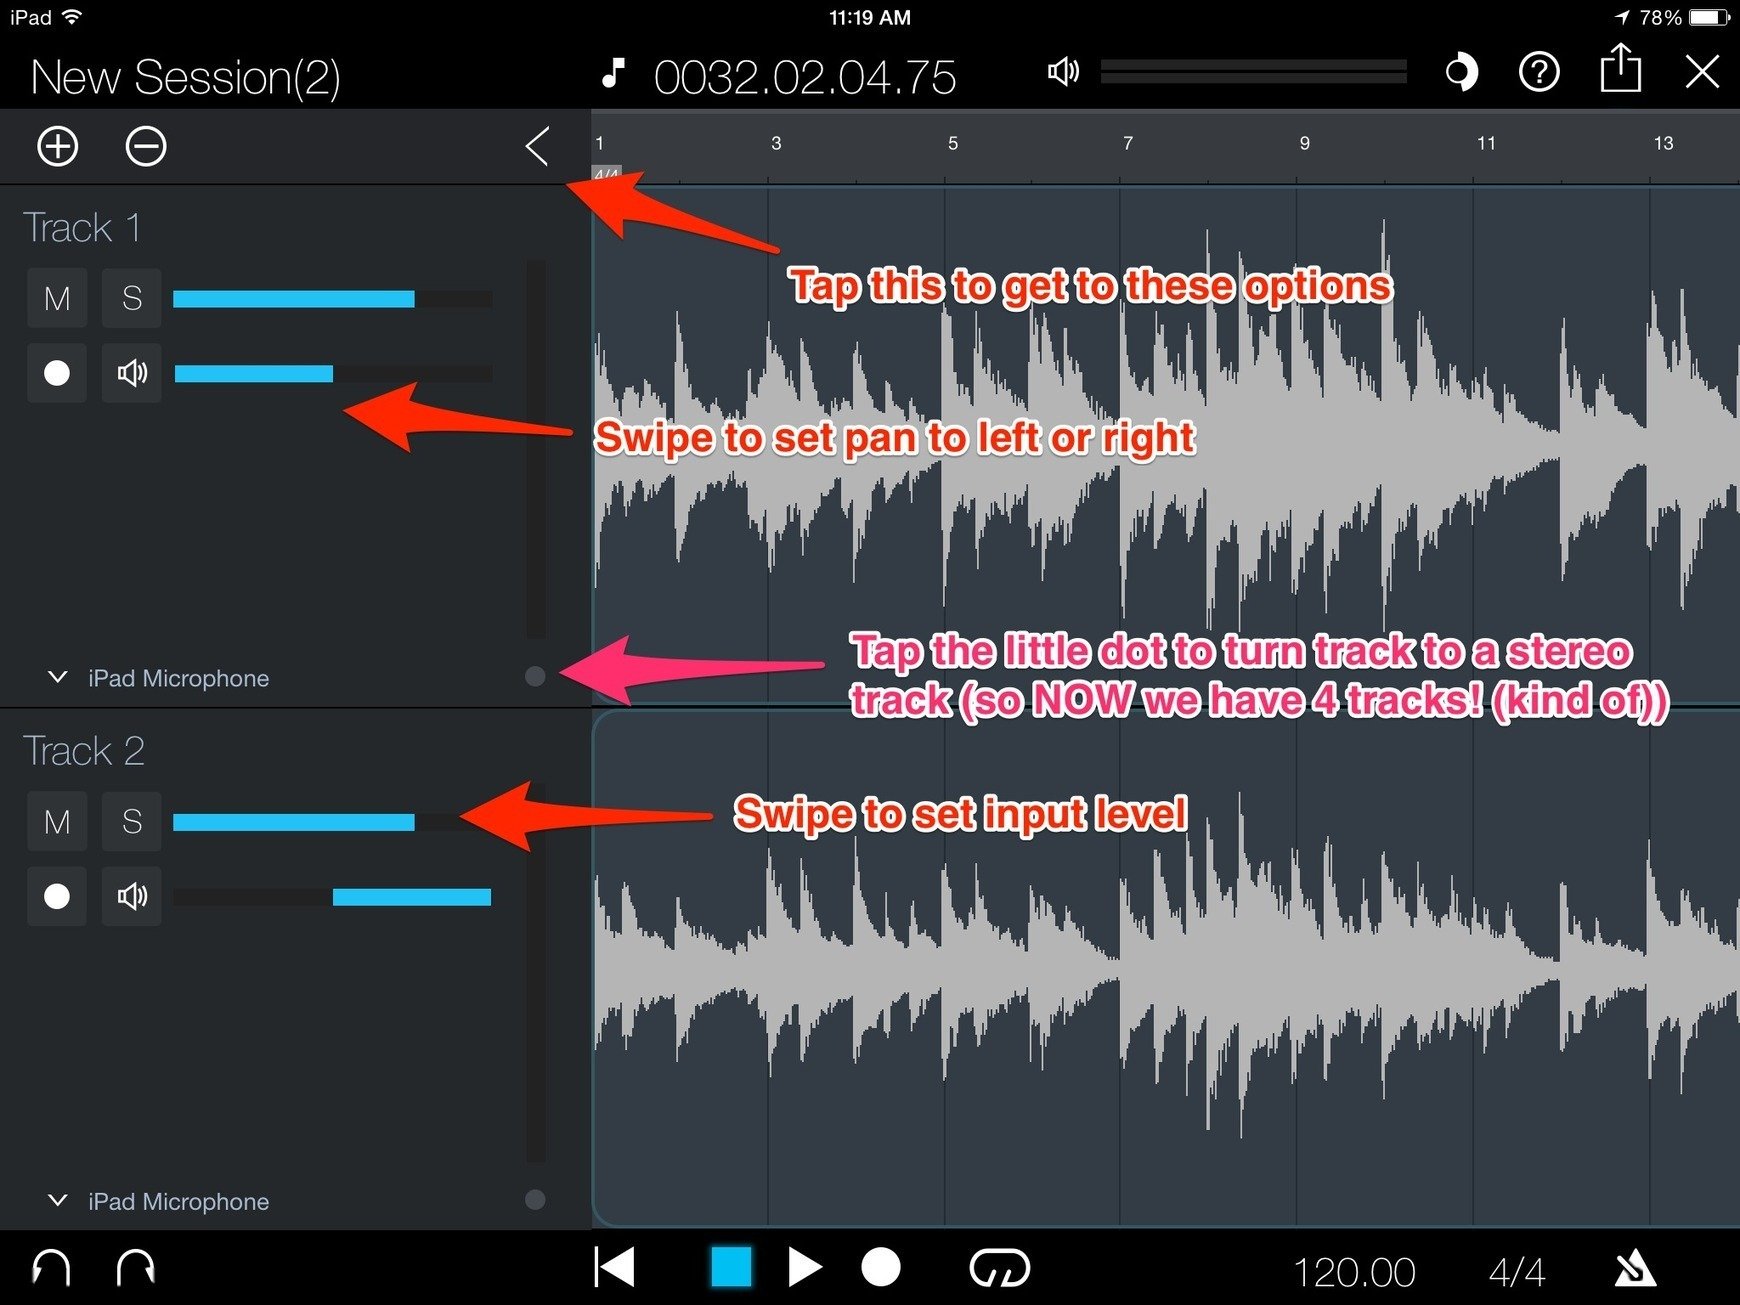 Capture for iPad Arrives - Drop Dead Simple App to Record With! (UPDATED)